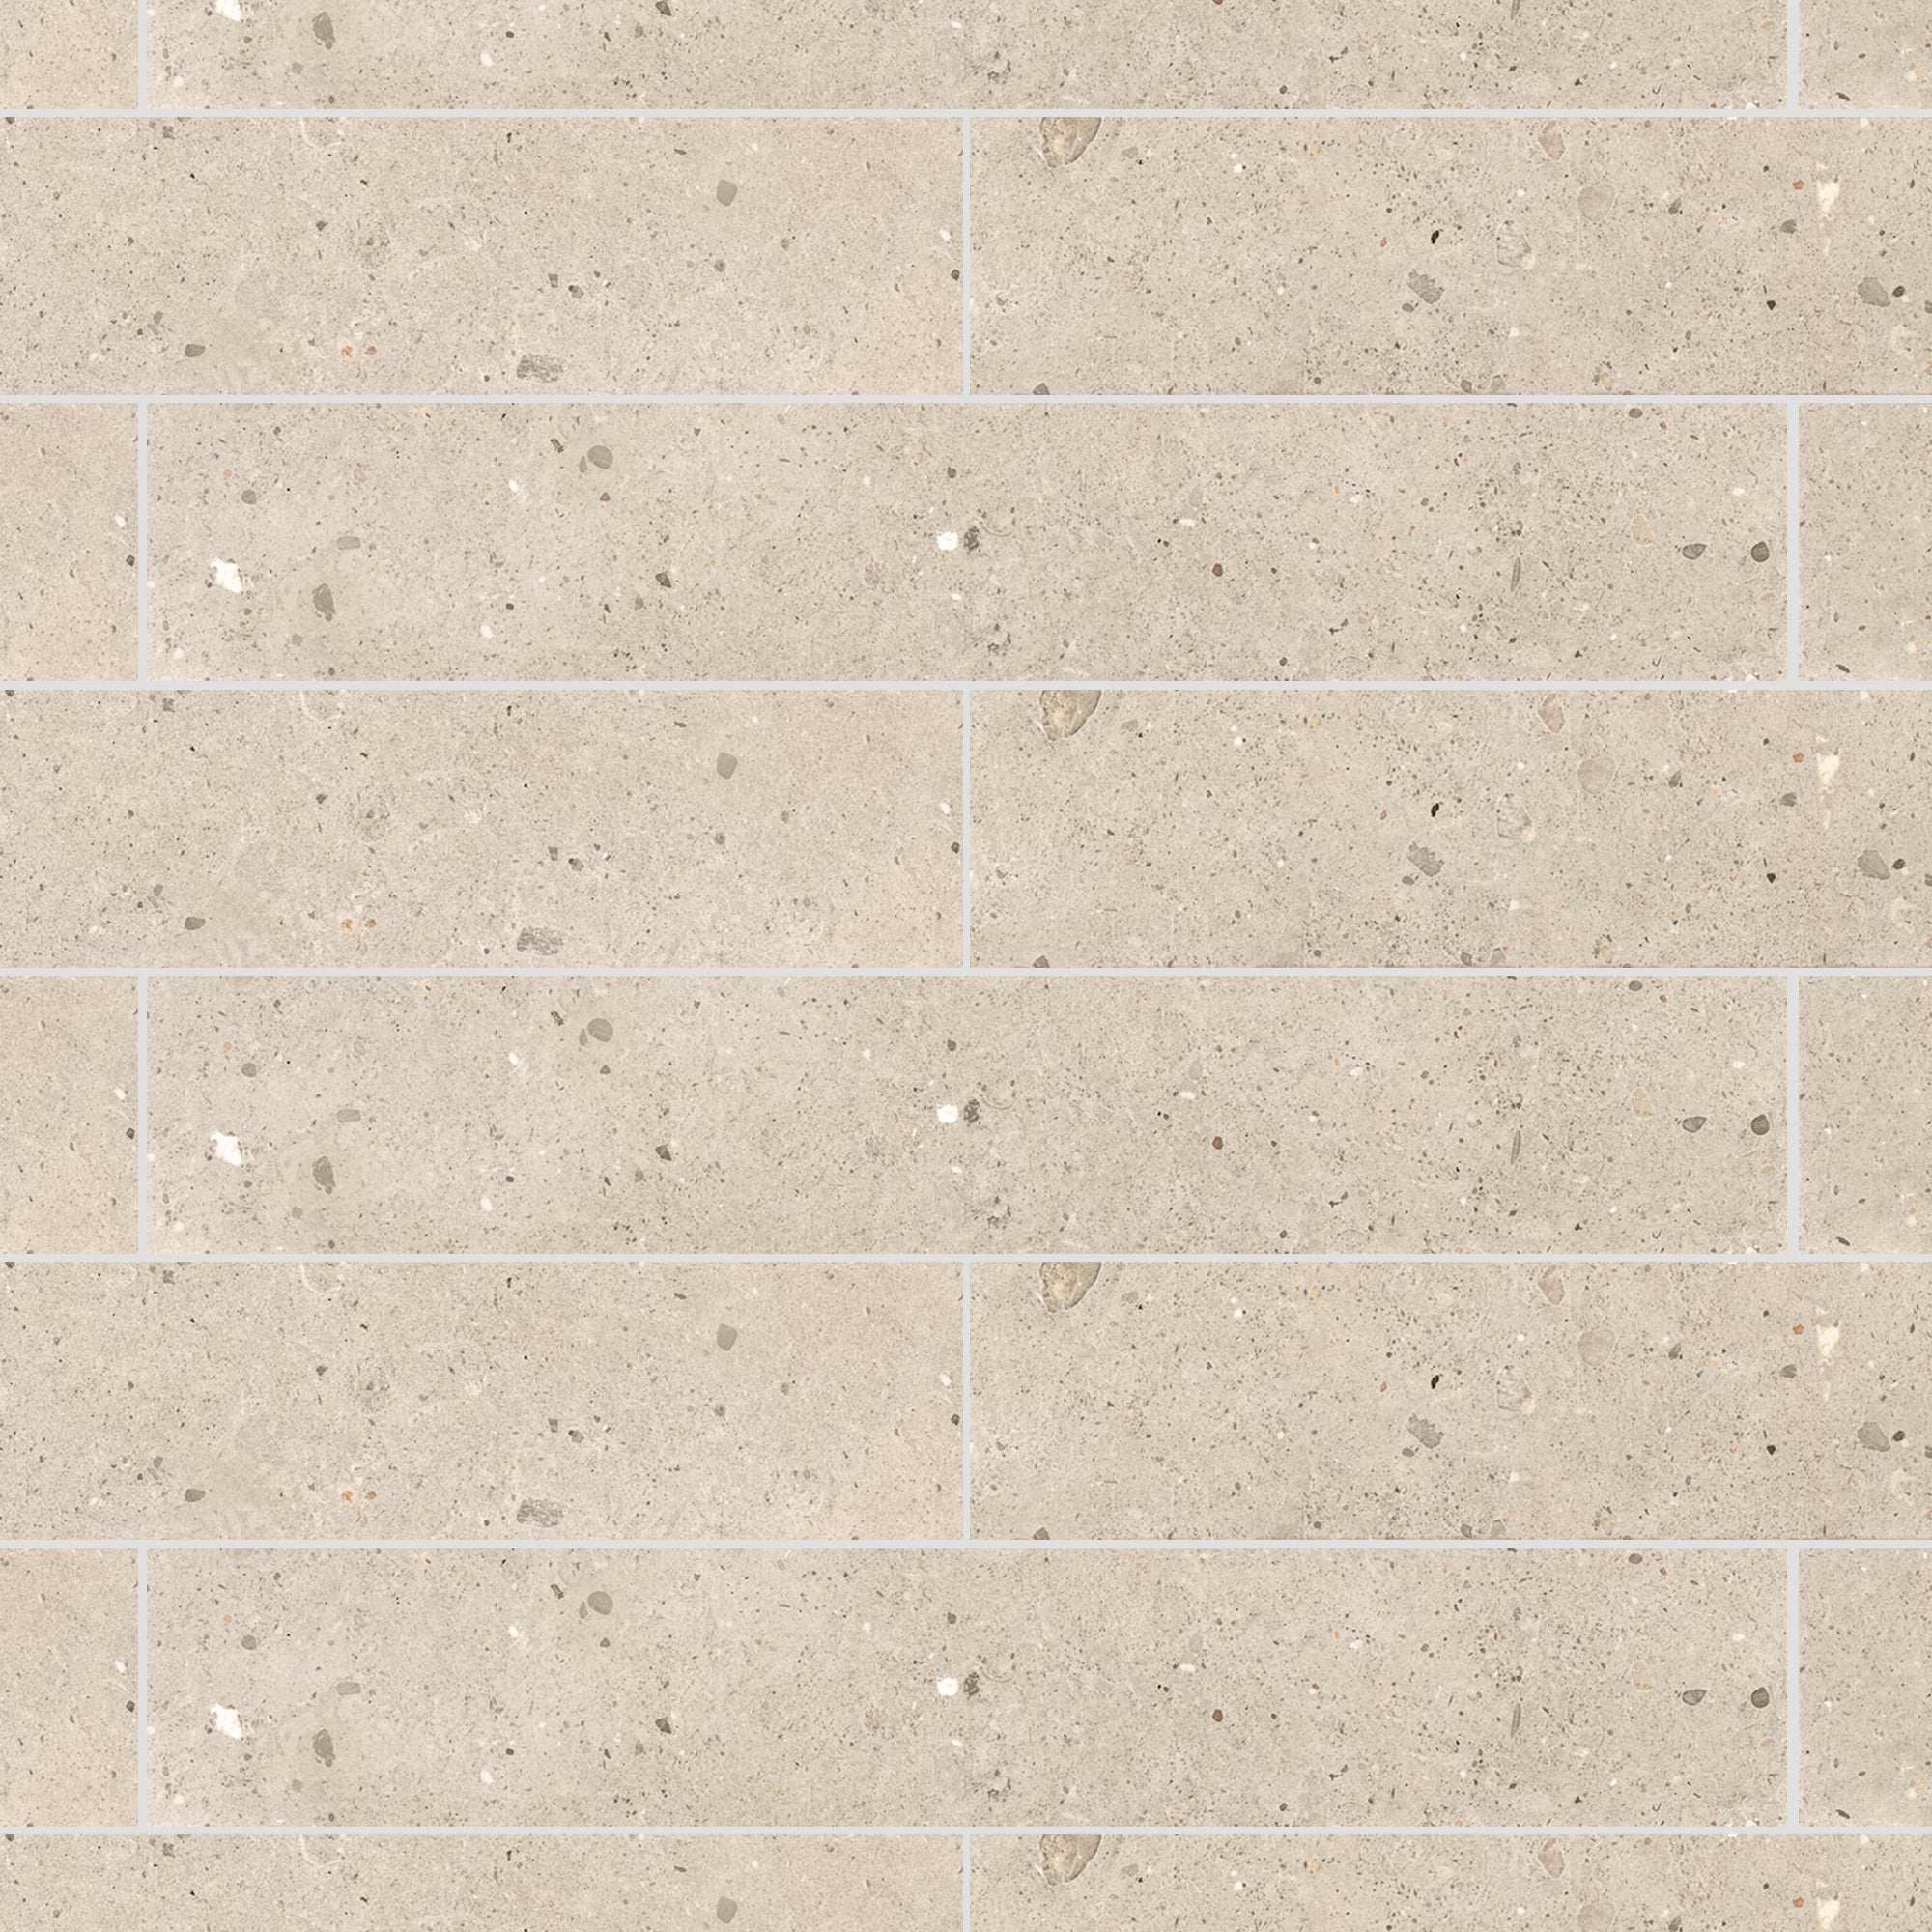 Beach House Stone Cream Swatch Card  Matte Samples product photo